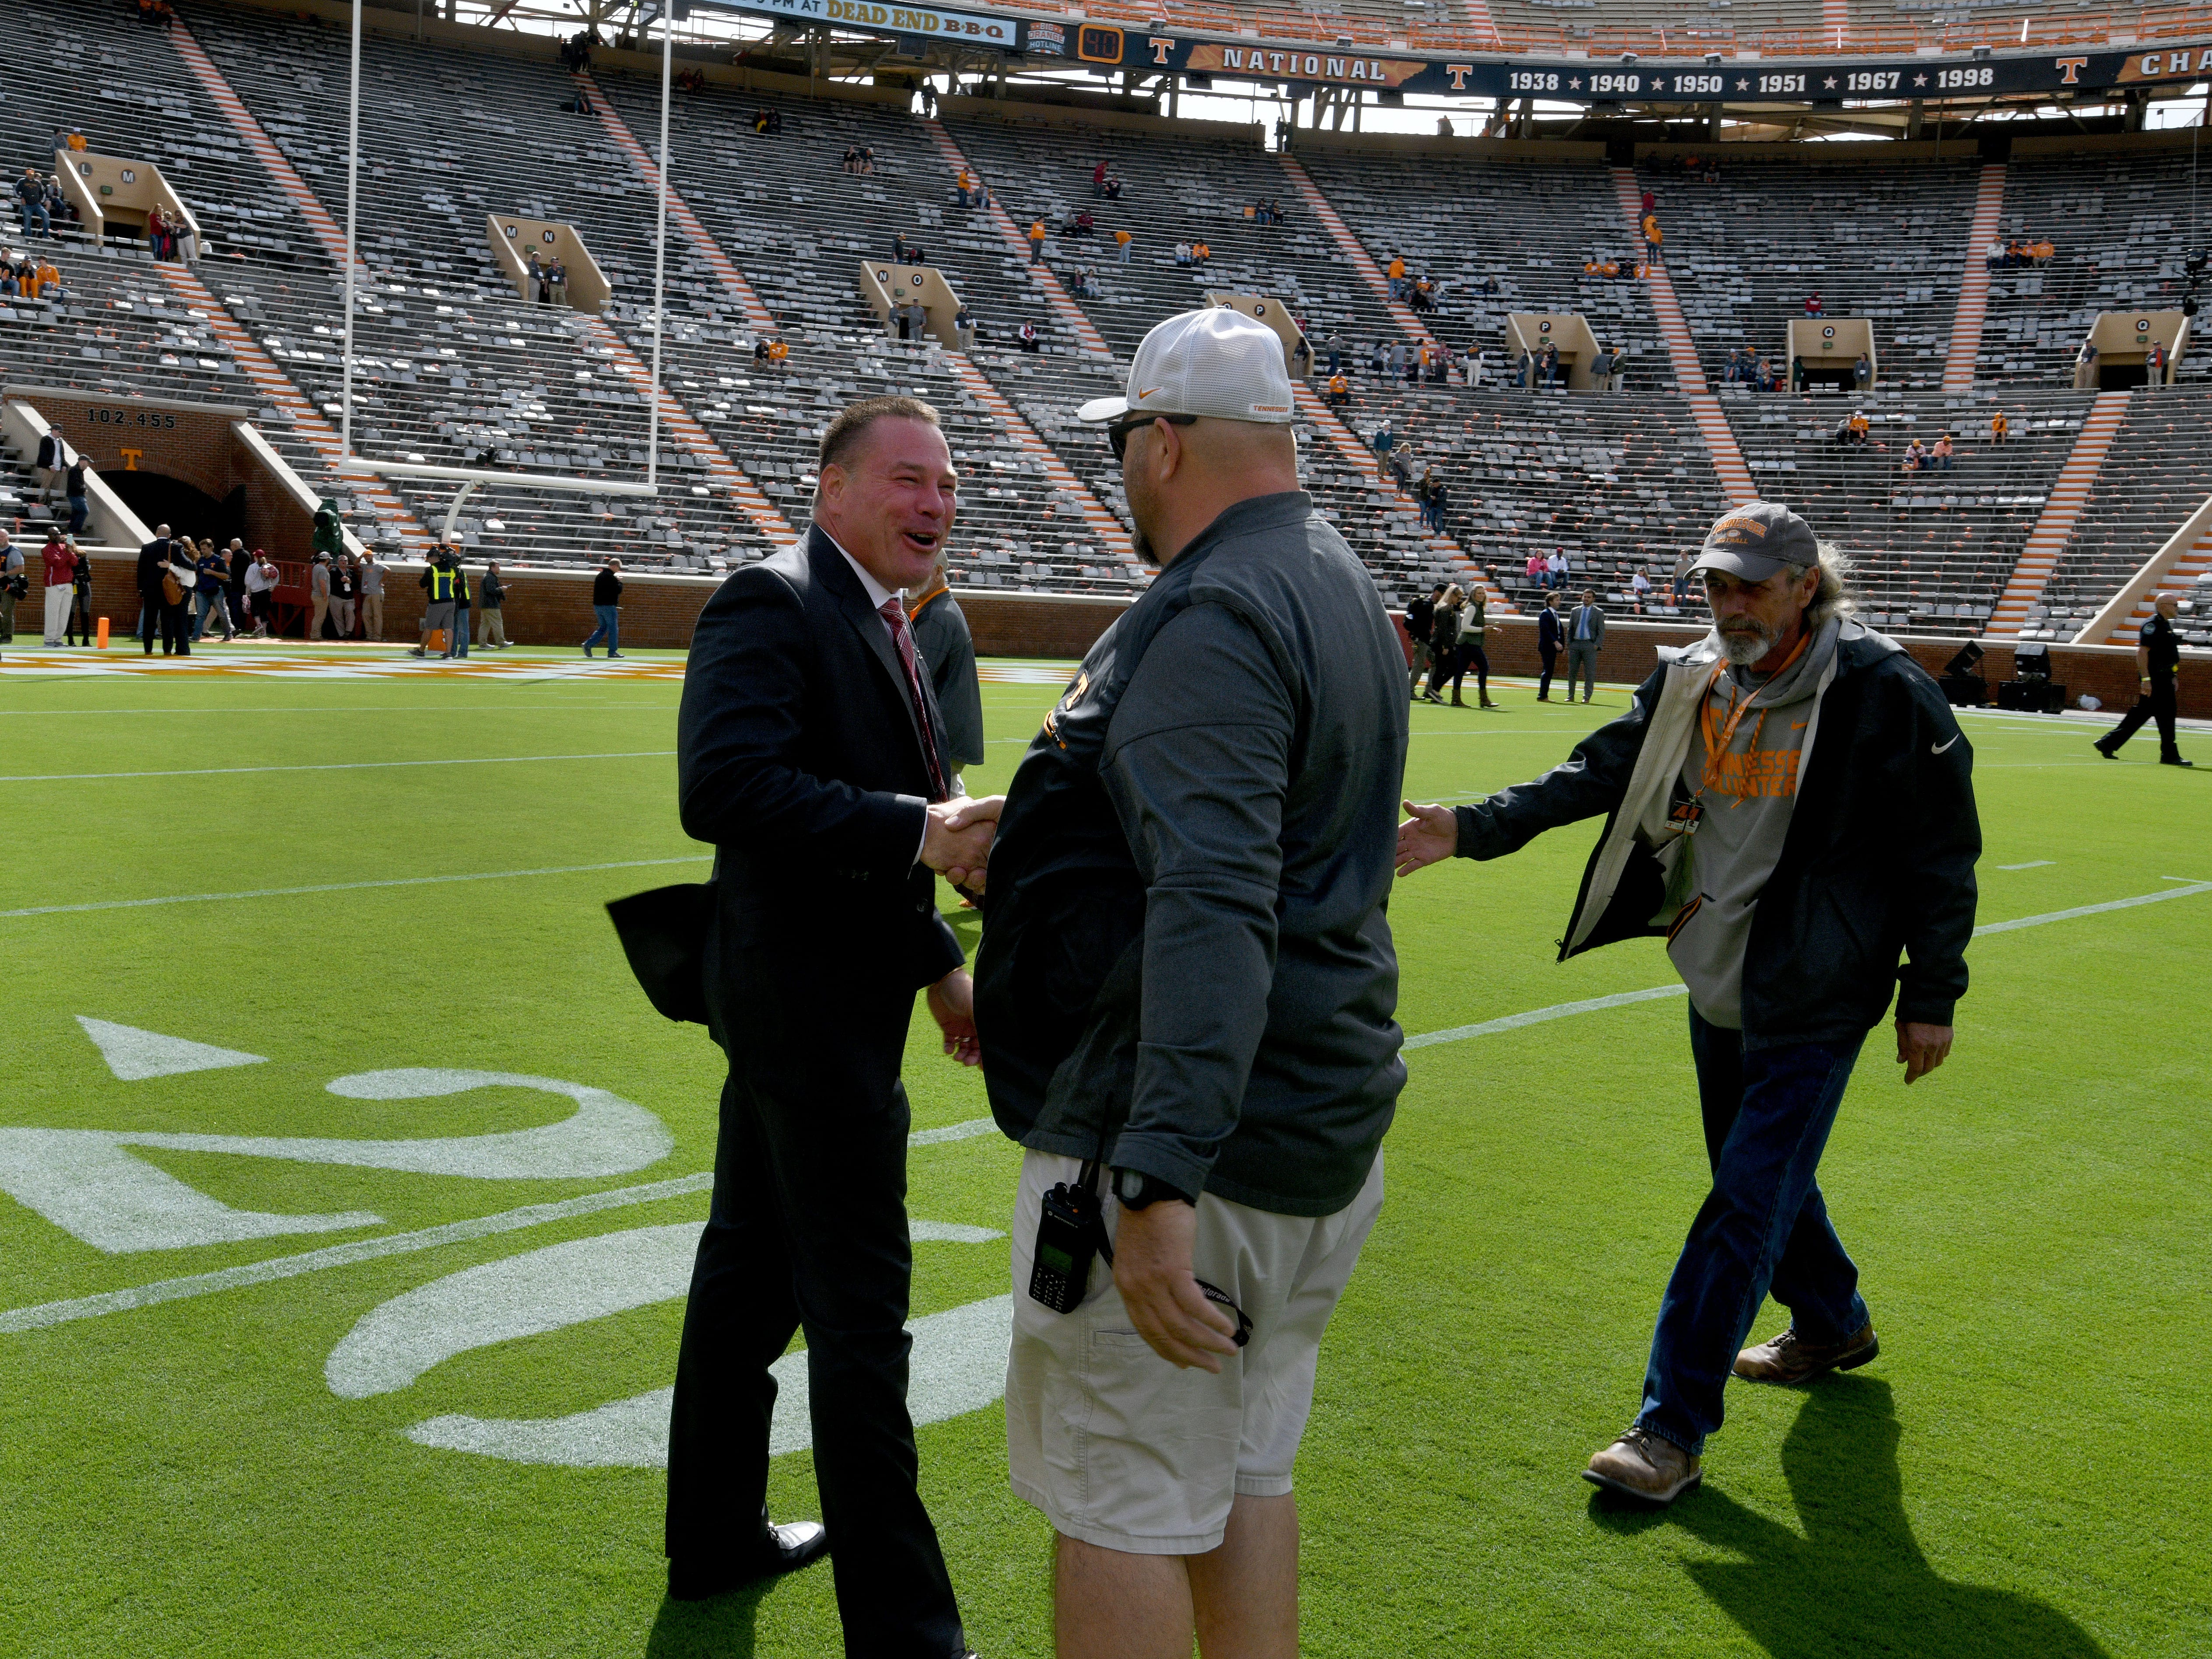 Alabama analyst Butch Jones greets former staff before the Tennessee game Saturday, October 20, 2018 at Neyland Stadium in Knoxville, Tenn.